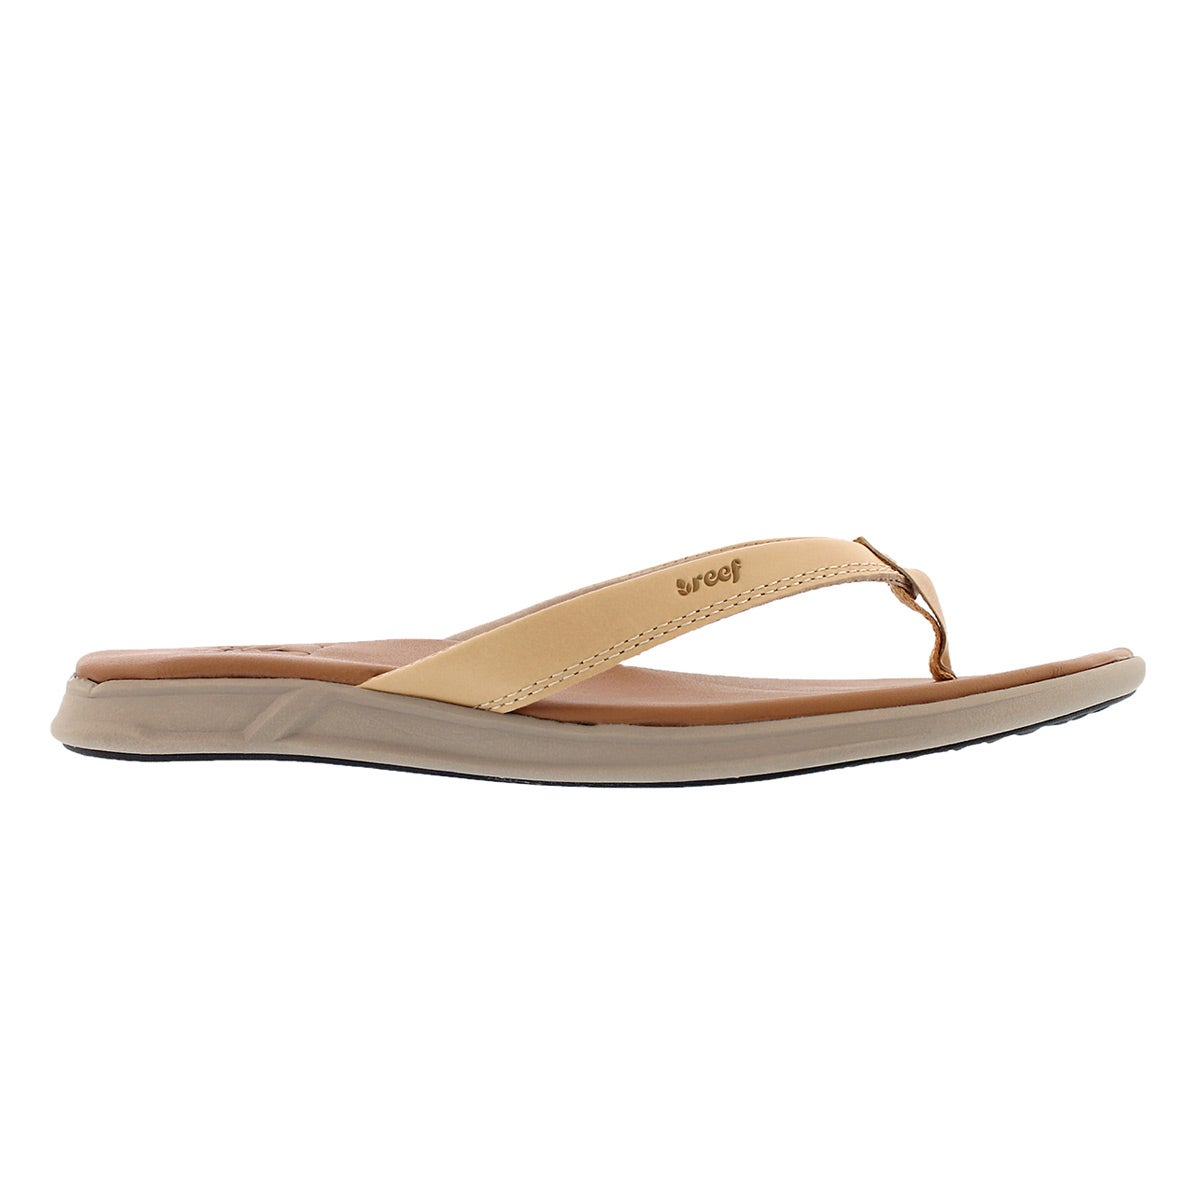 Lds Reef Rover Catch LE nat thong sandal